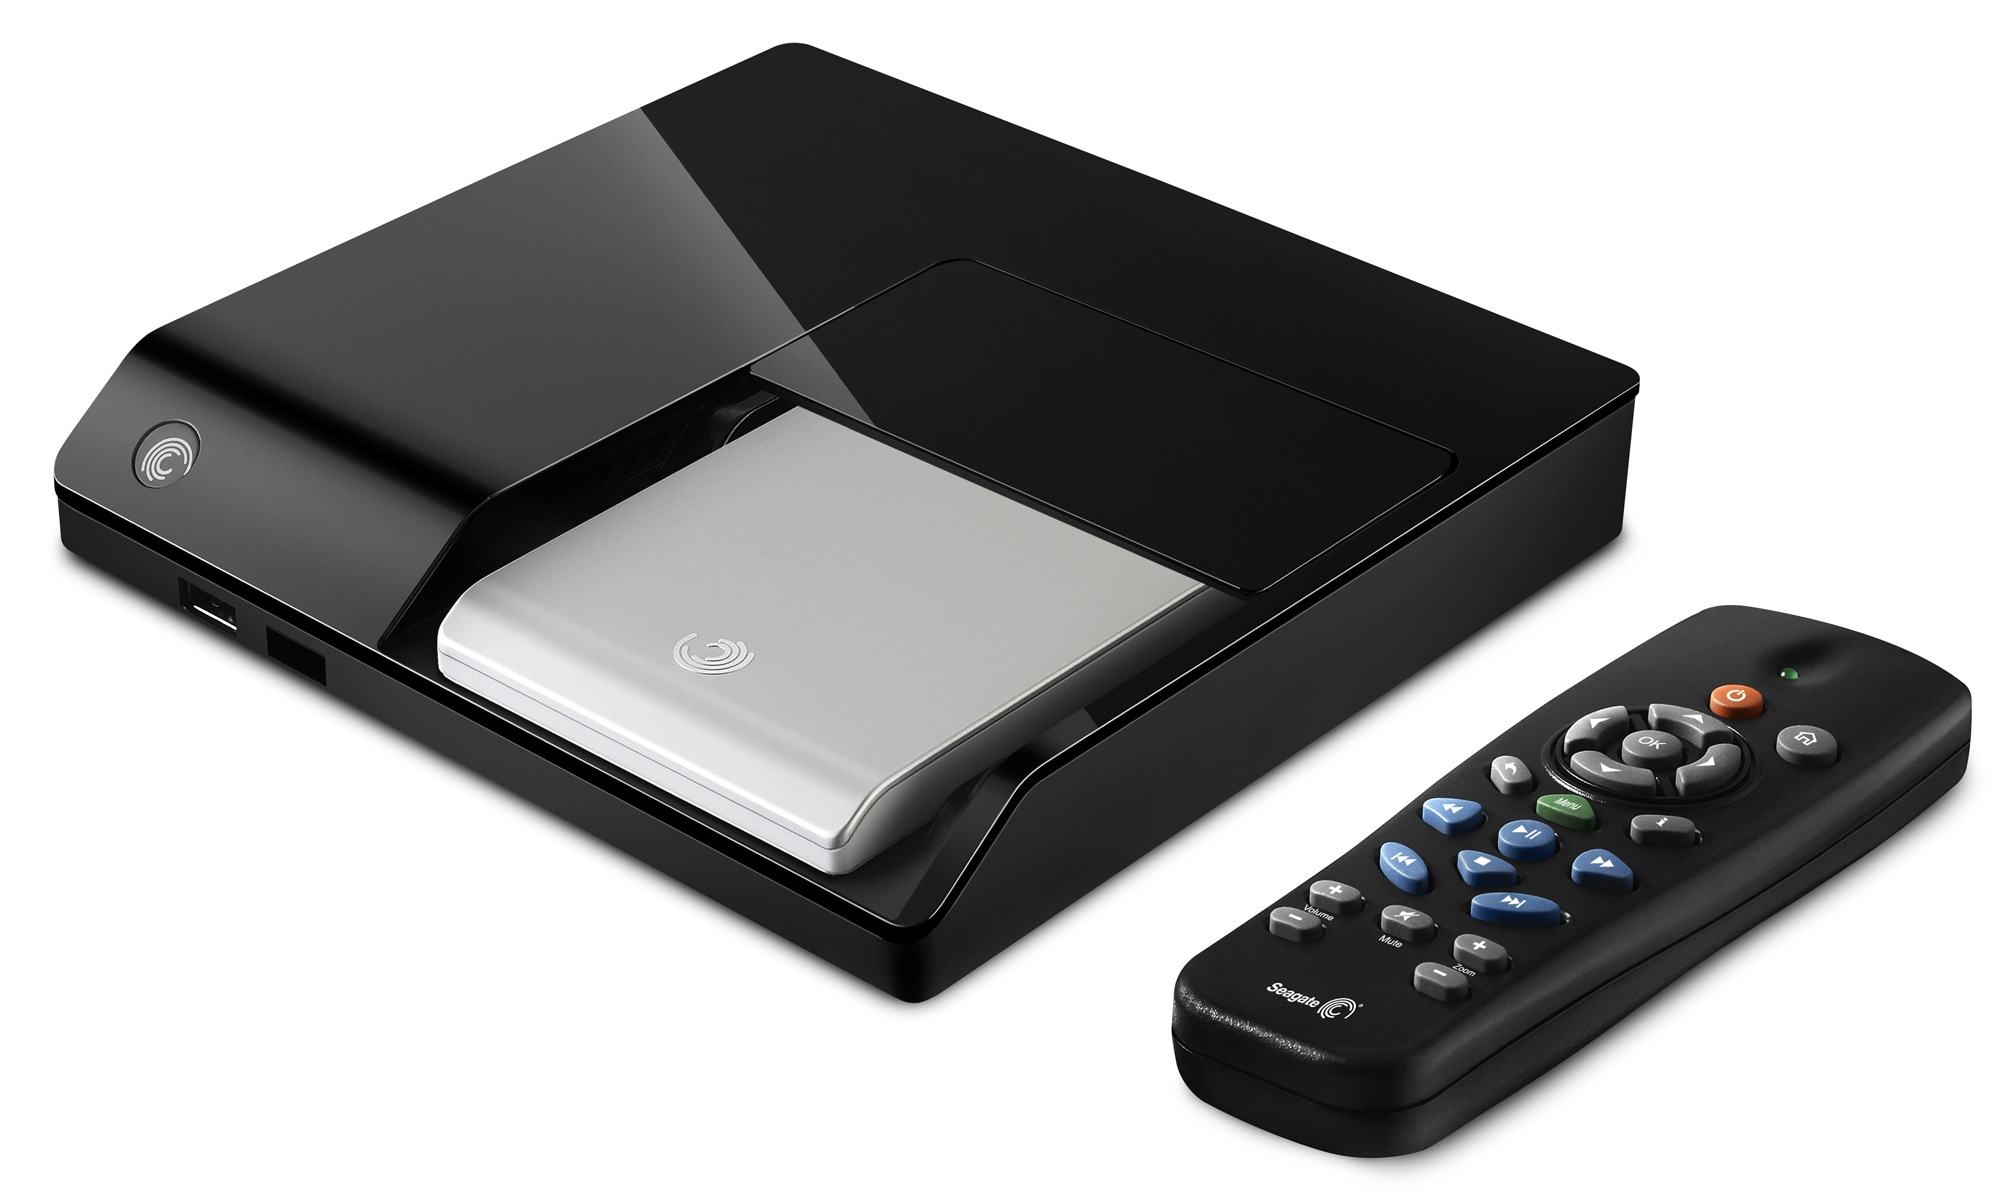 Seagate FreeAgent Theater+ gets 1080p, HDMI, ethernet upgrade